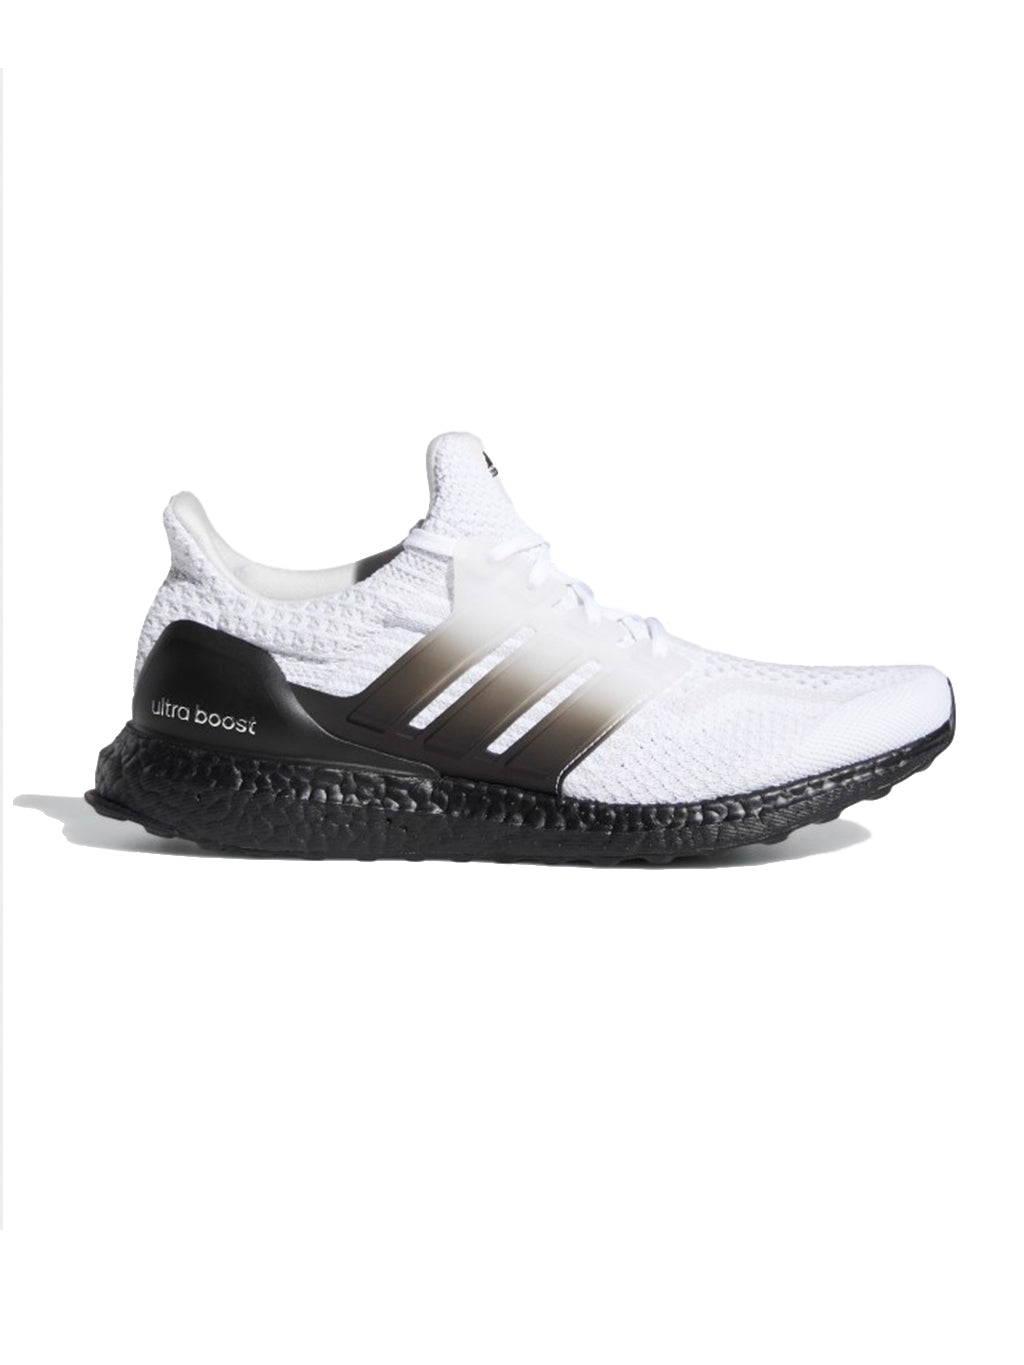 Black & White Ultraboost 5.0 DNA Running Shoes